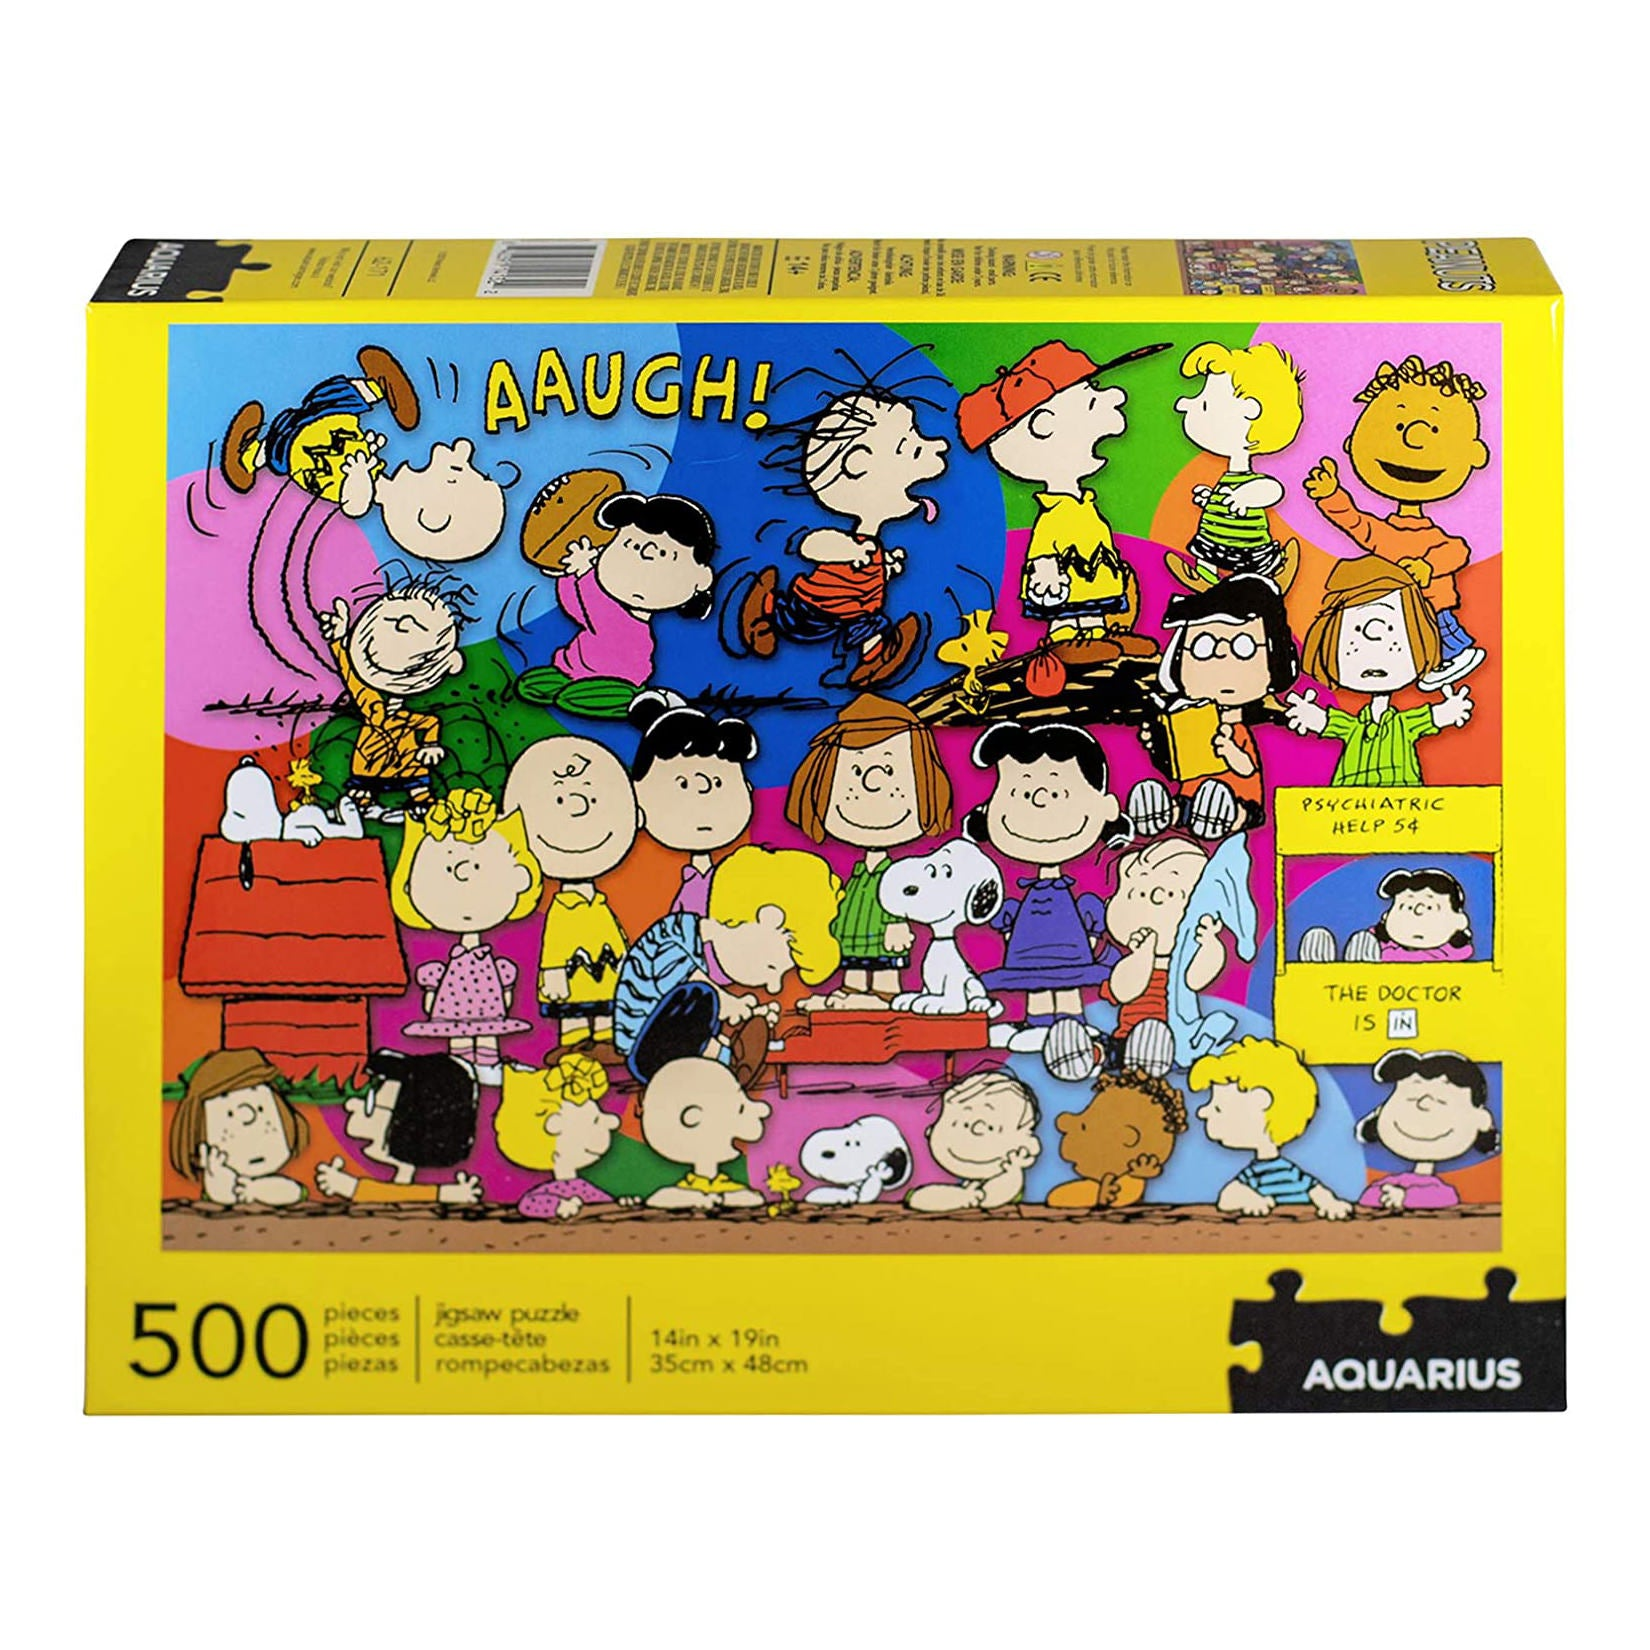 PEANUTS CAST 500 PC PUZZLE